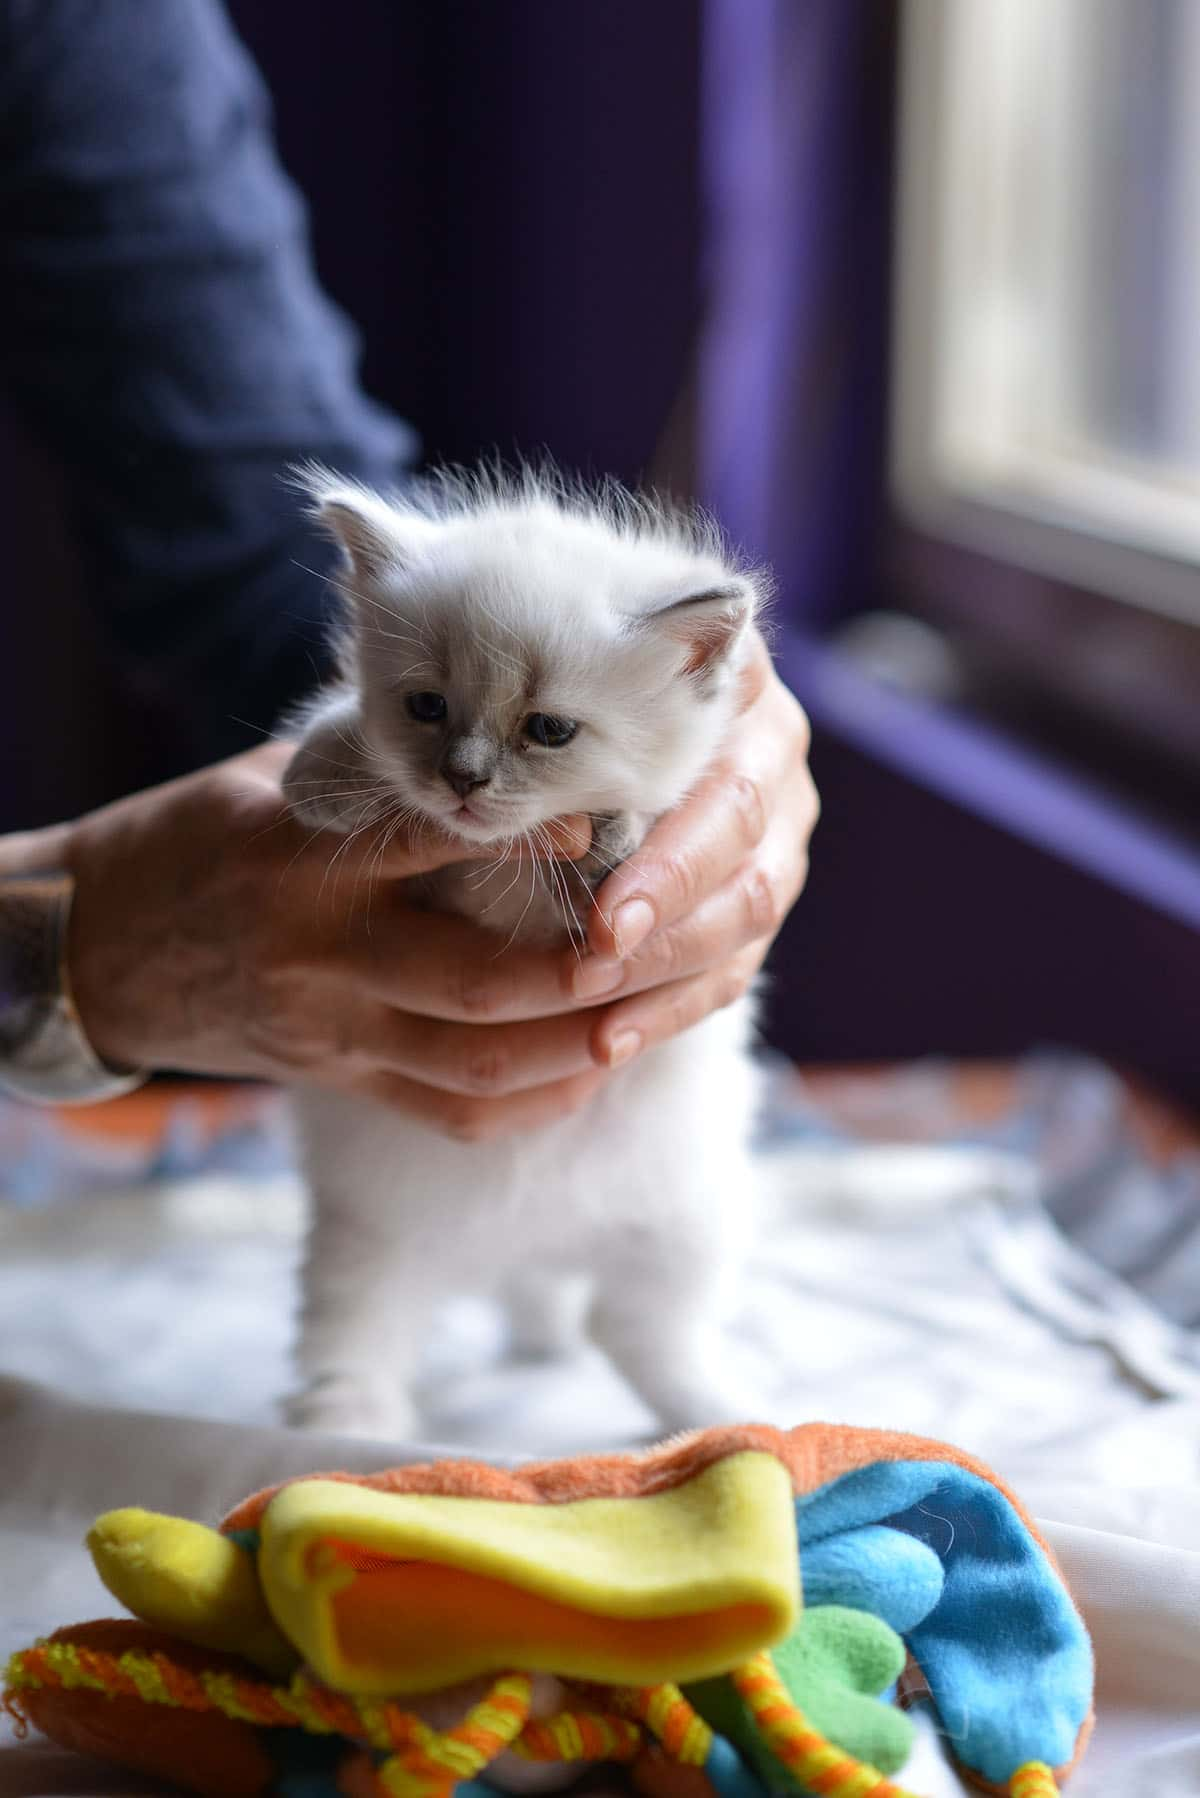 Andrejka-Male-Siberian-Neva-Masquerade-Cat-Litter-A-Bastet-Beauty-Cattery